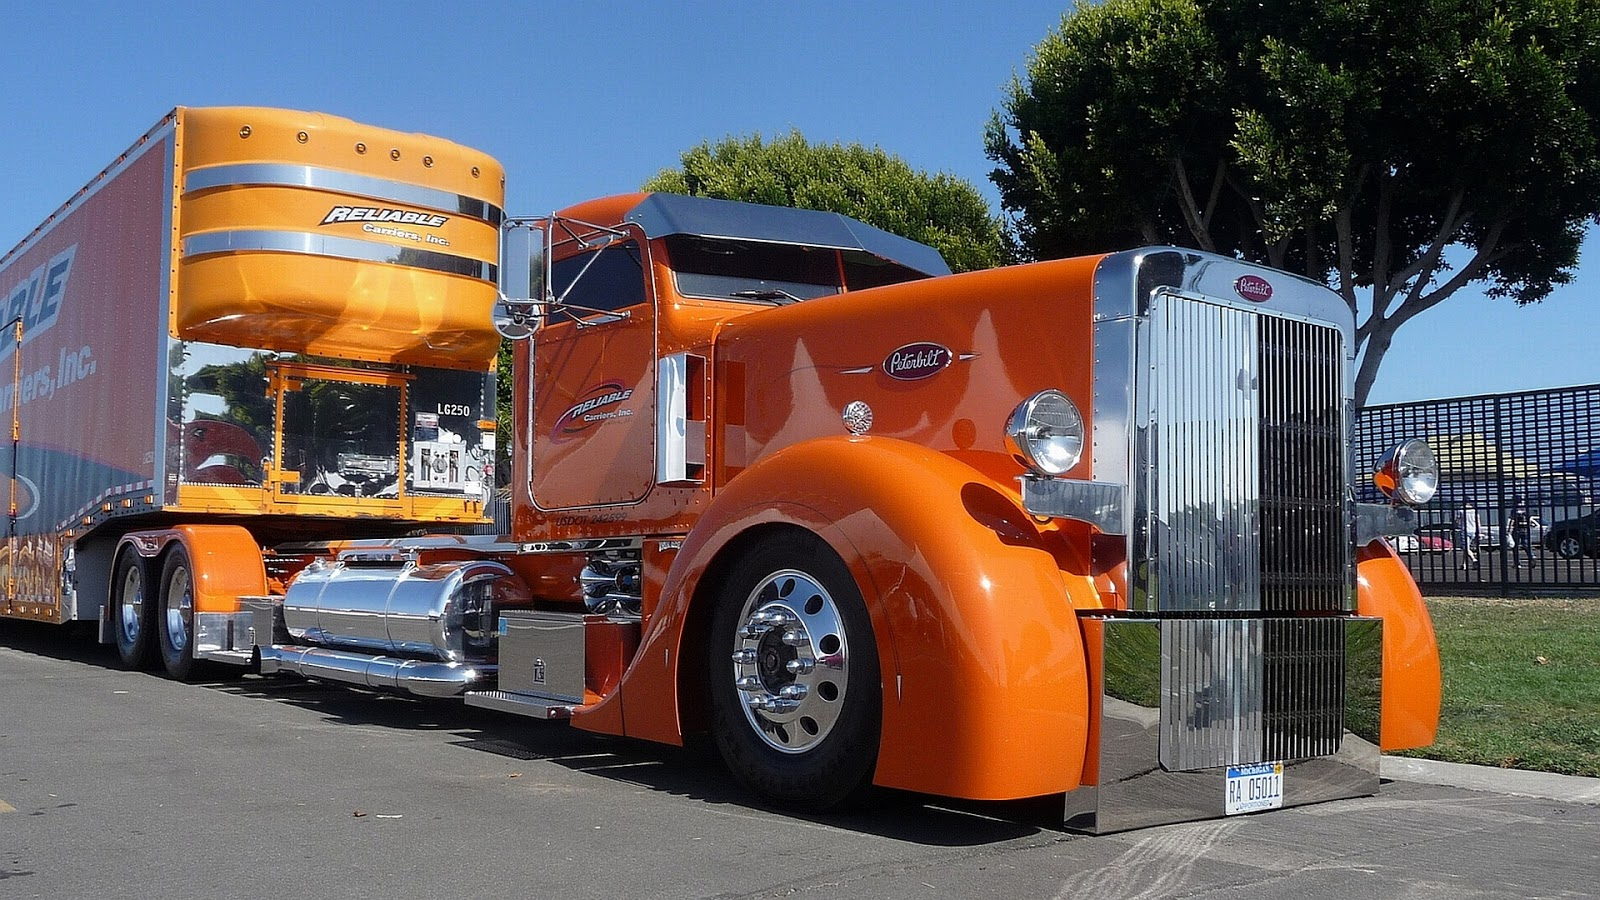 Camion Tuning tuning camion.. - excellent hd quality of image sharing